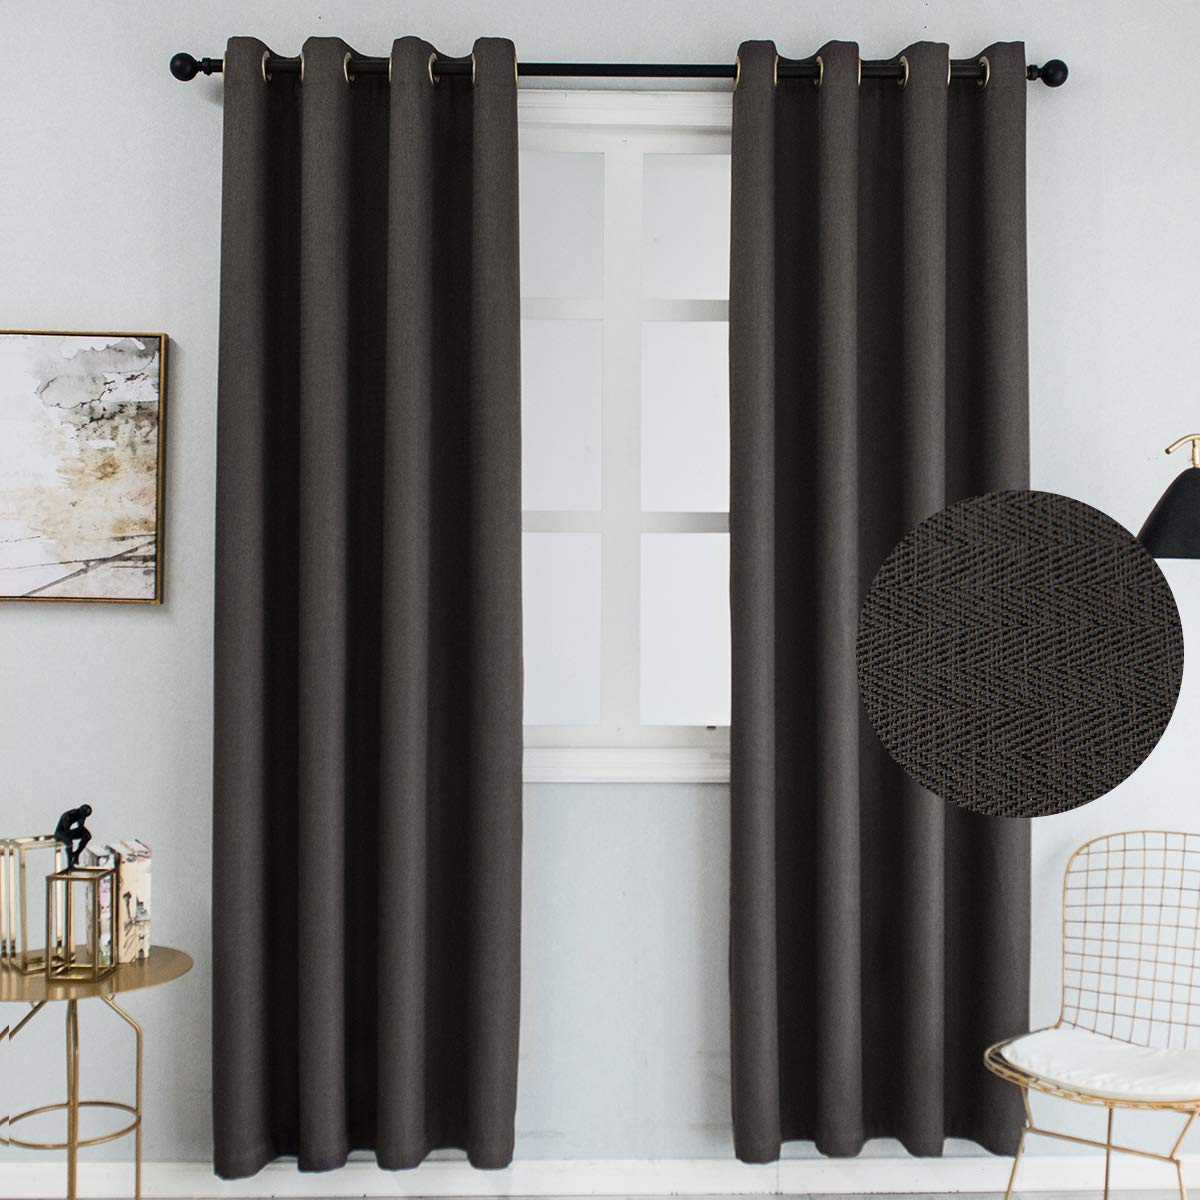 Colokey Blackout Curtain for Bedroom Window Treatments Single Panel for Living Room,Grey,100x84-inch,1 Panel